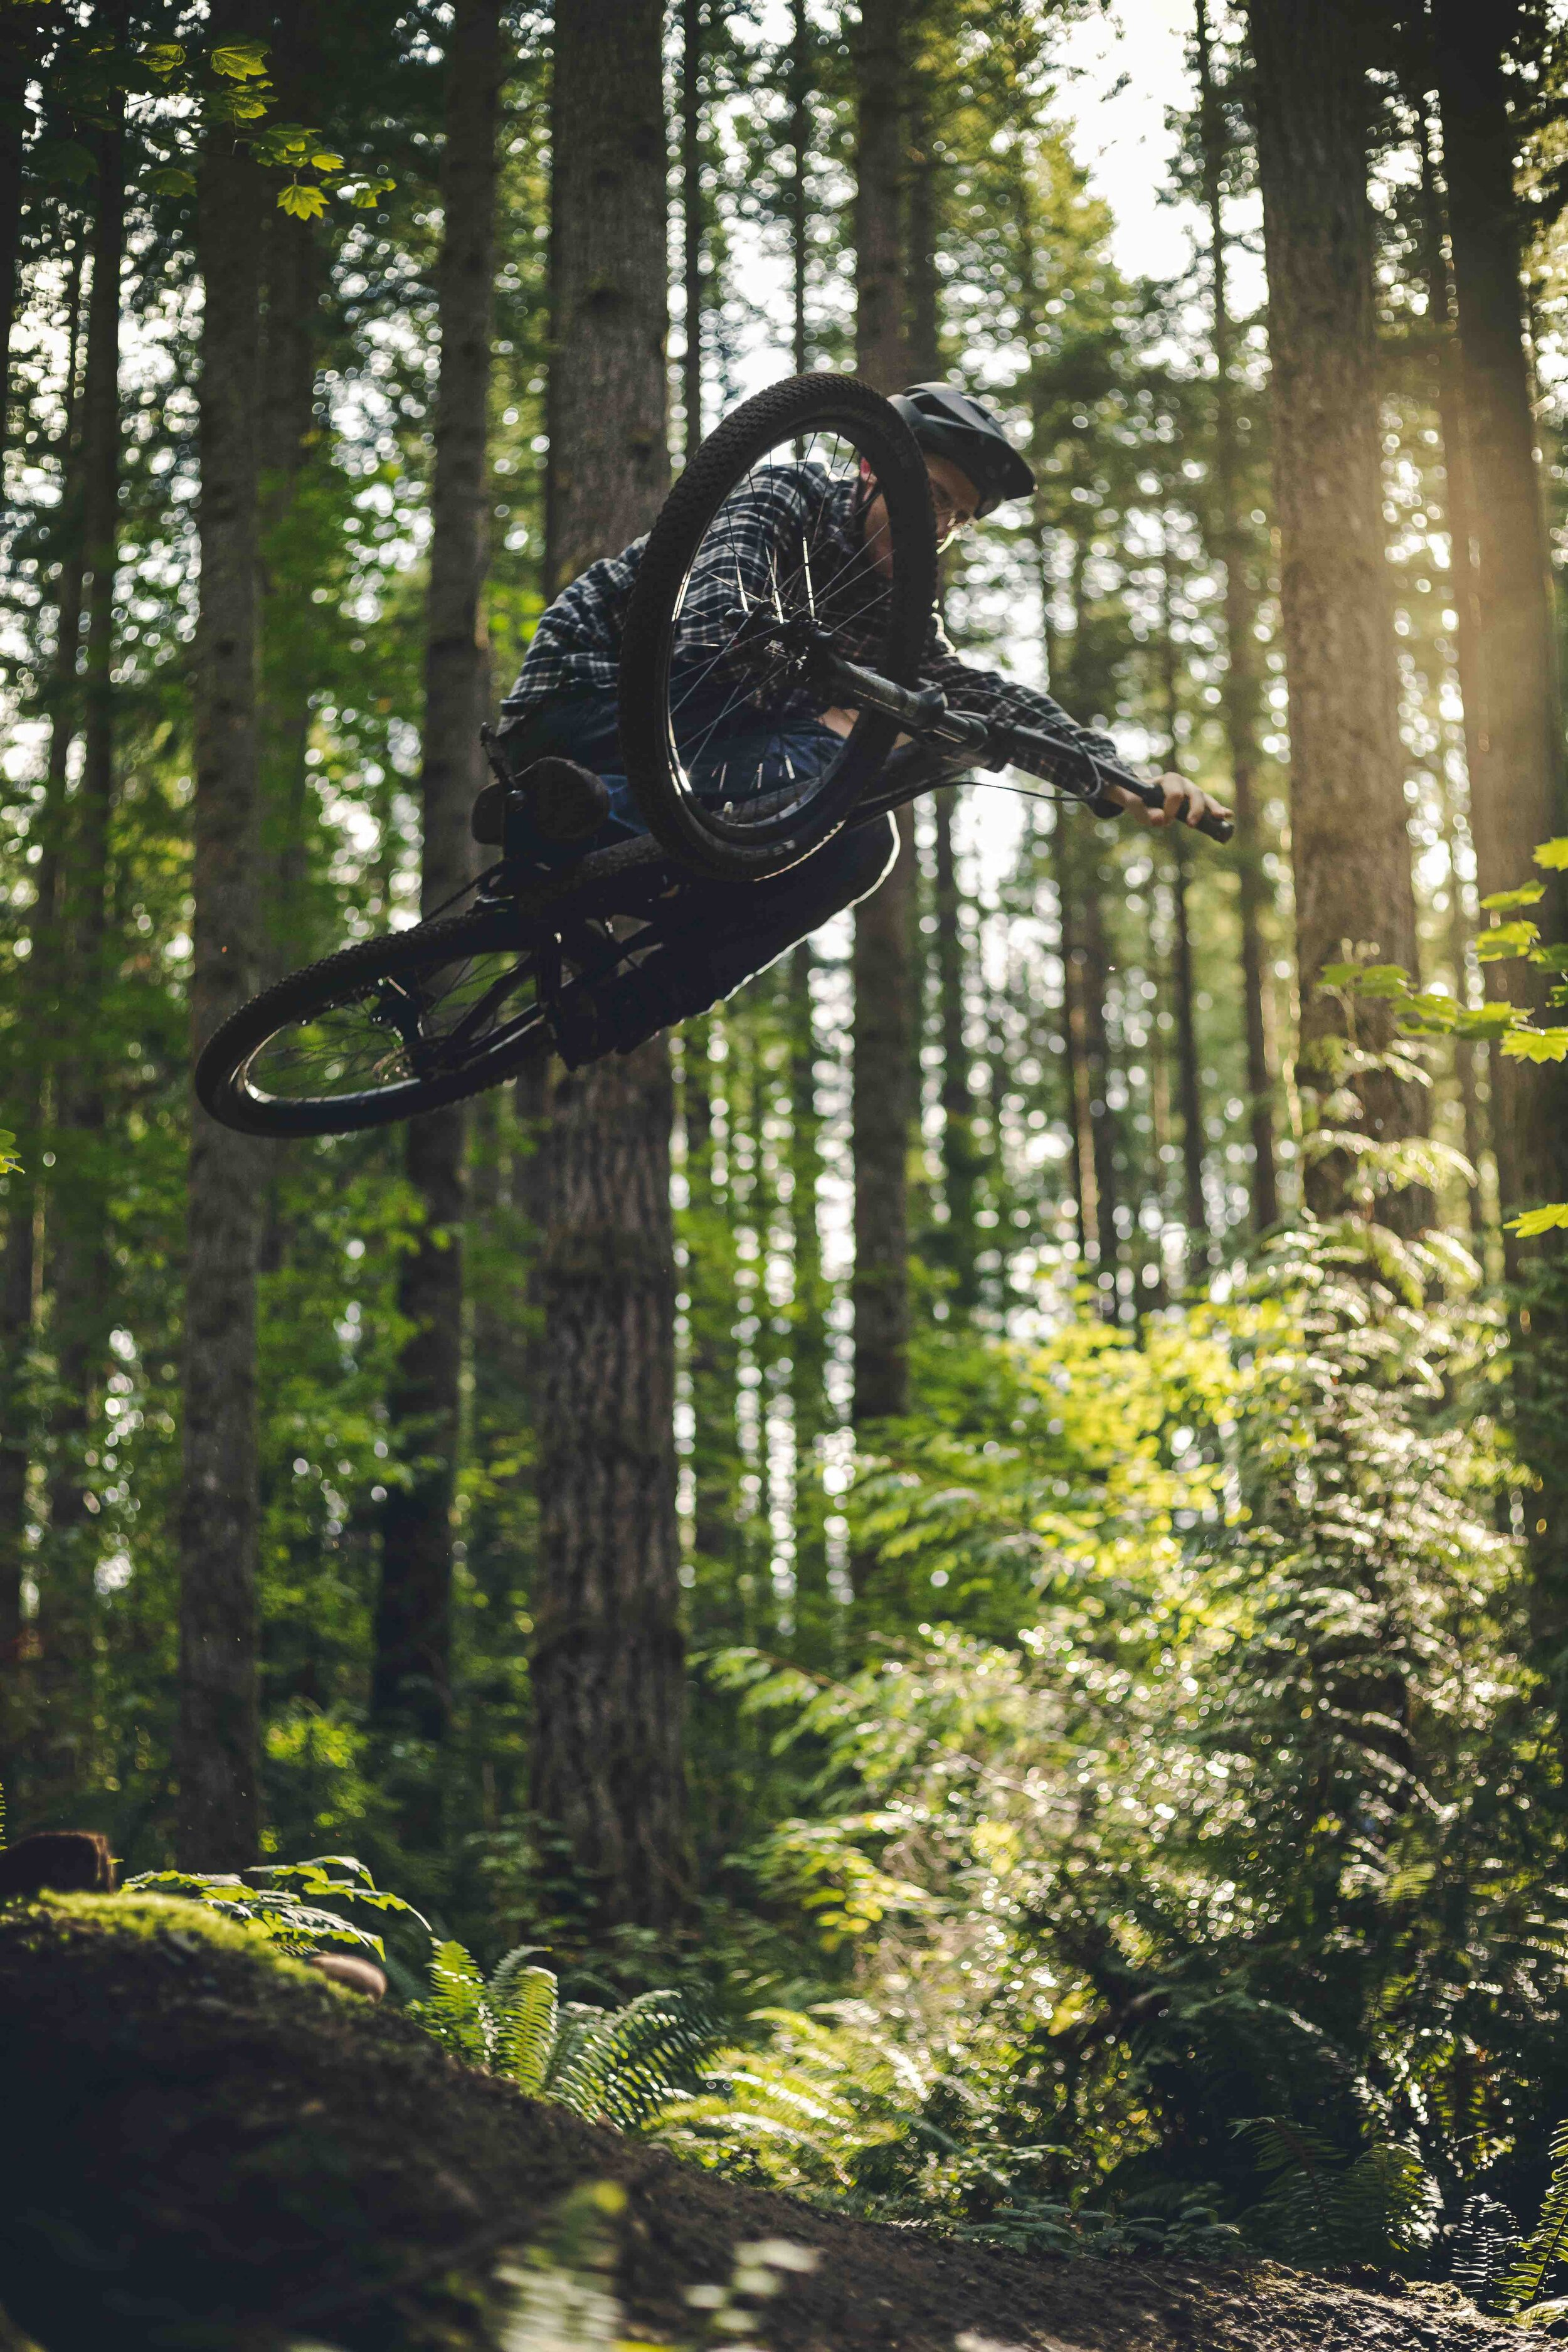 Stylish_Mountain_Bike_Air_with_Sideways_Trick_Over_Forest_Trees.jpeg